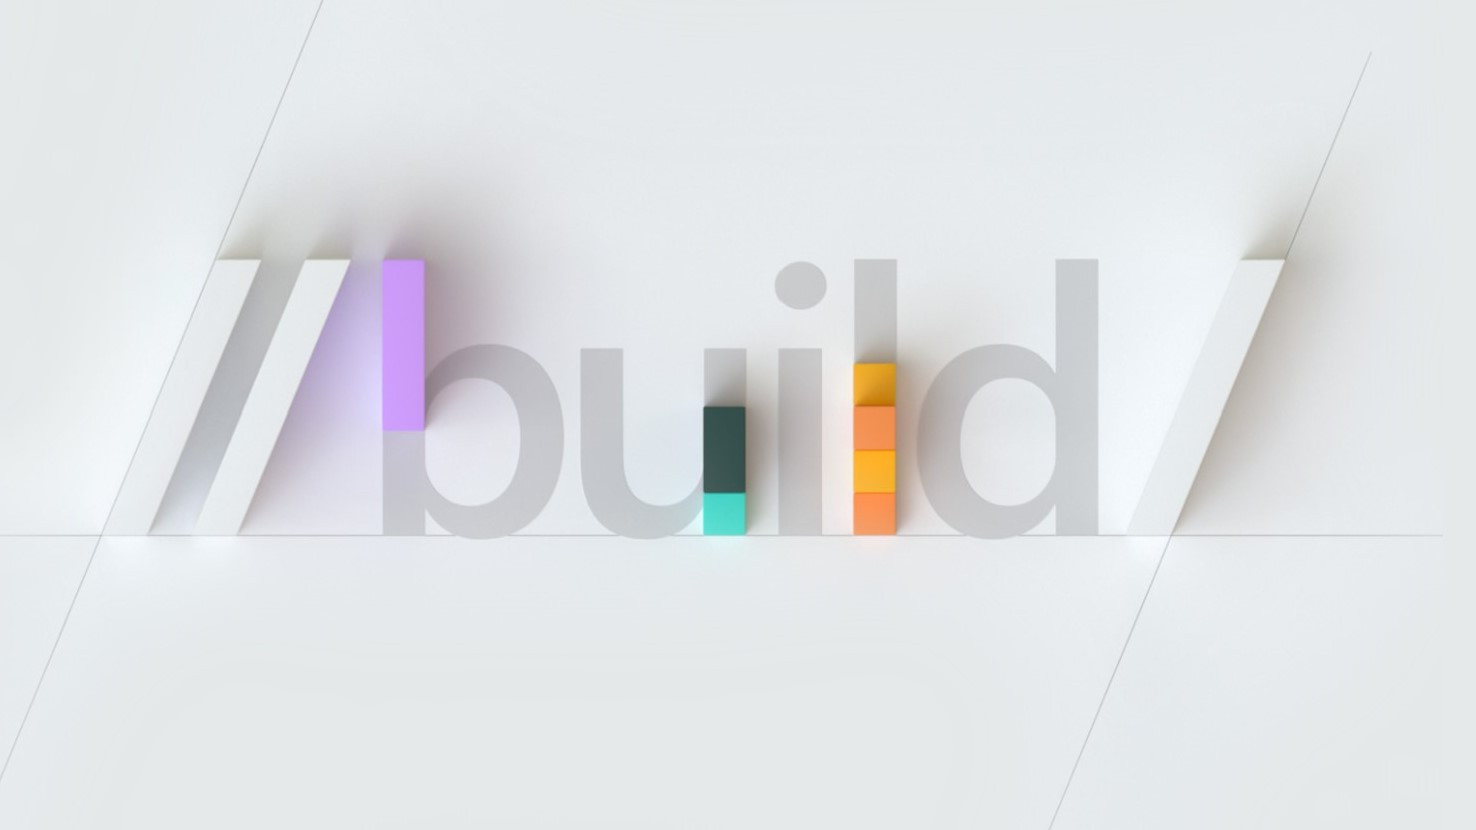 Microsoft Build will take place on May 25th.